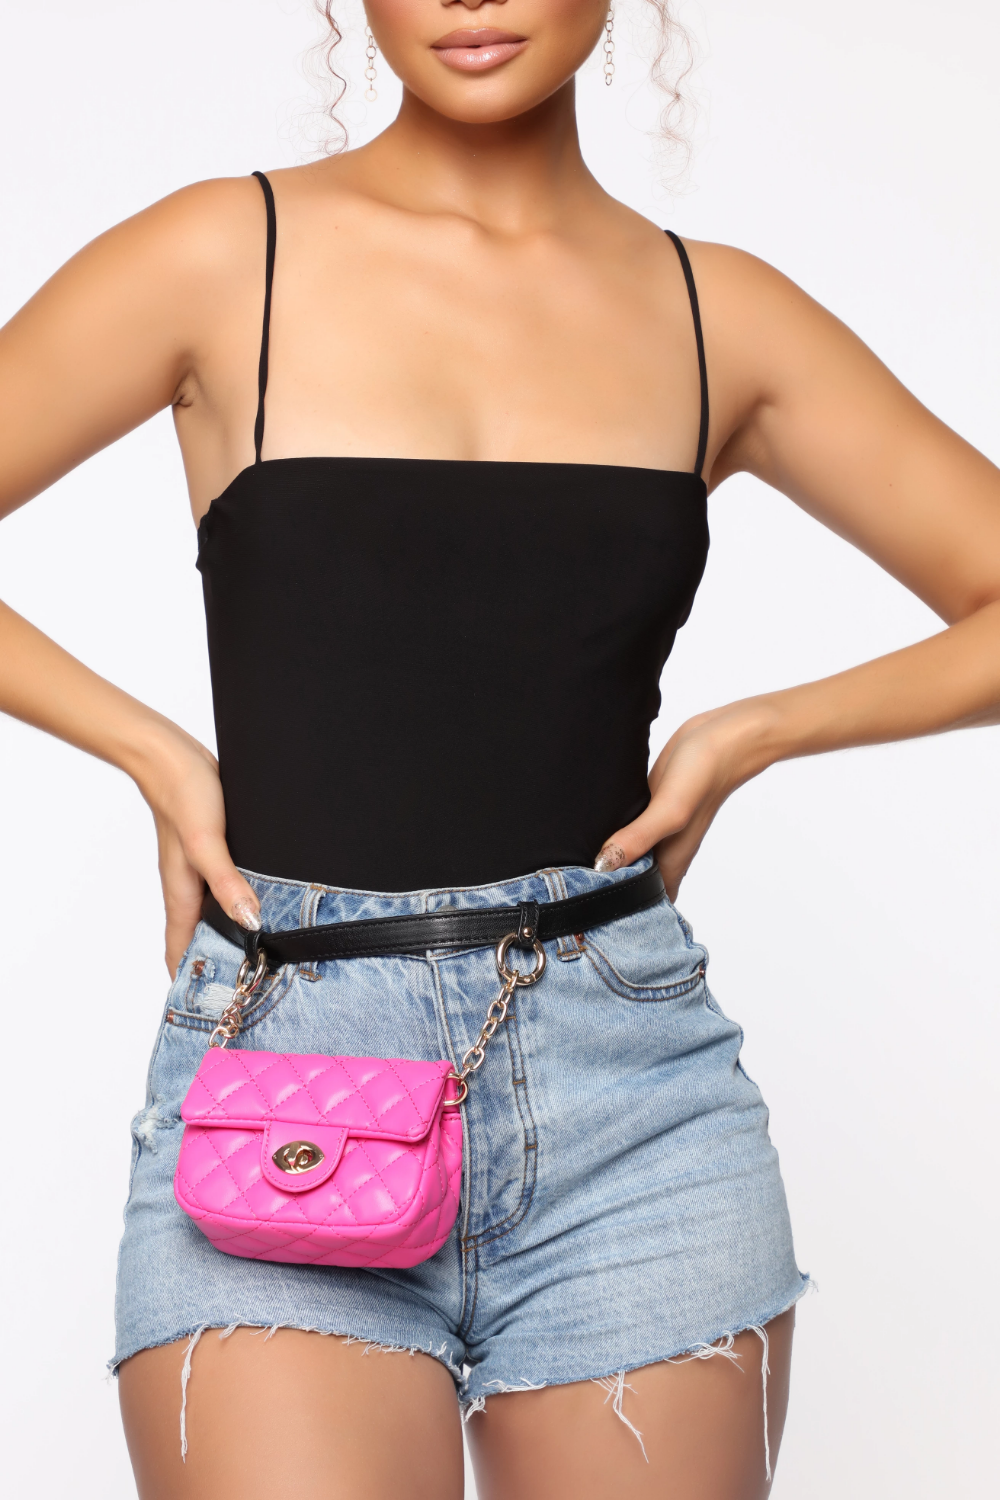 Expensive Taste Fanny Pack - Pink #expensivetaste